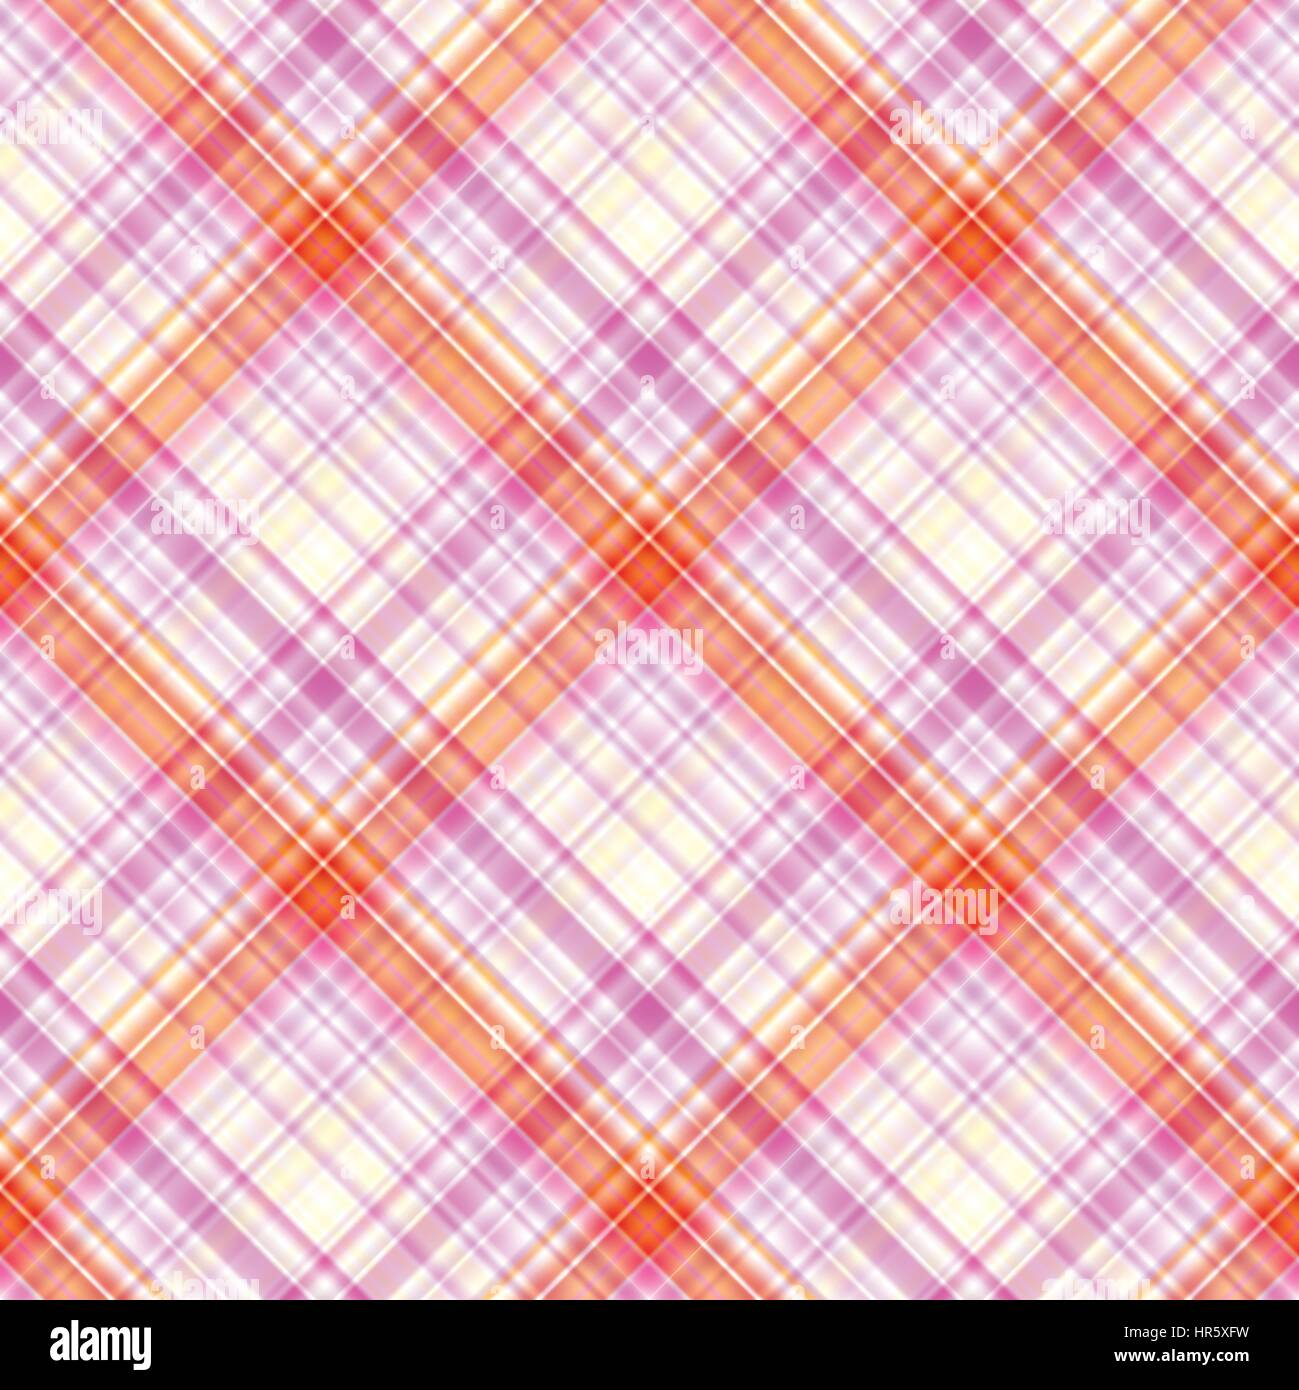 Fabric texture. Seamless tartan pattern. Vector background. - Stock Vector